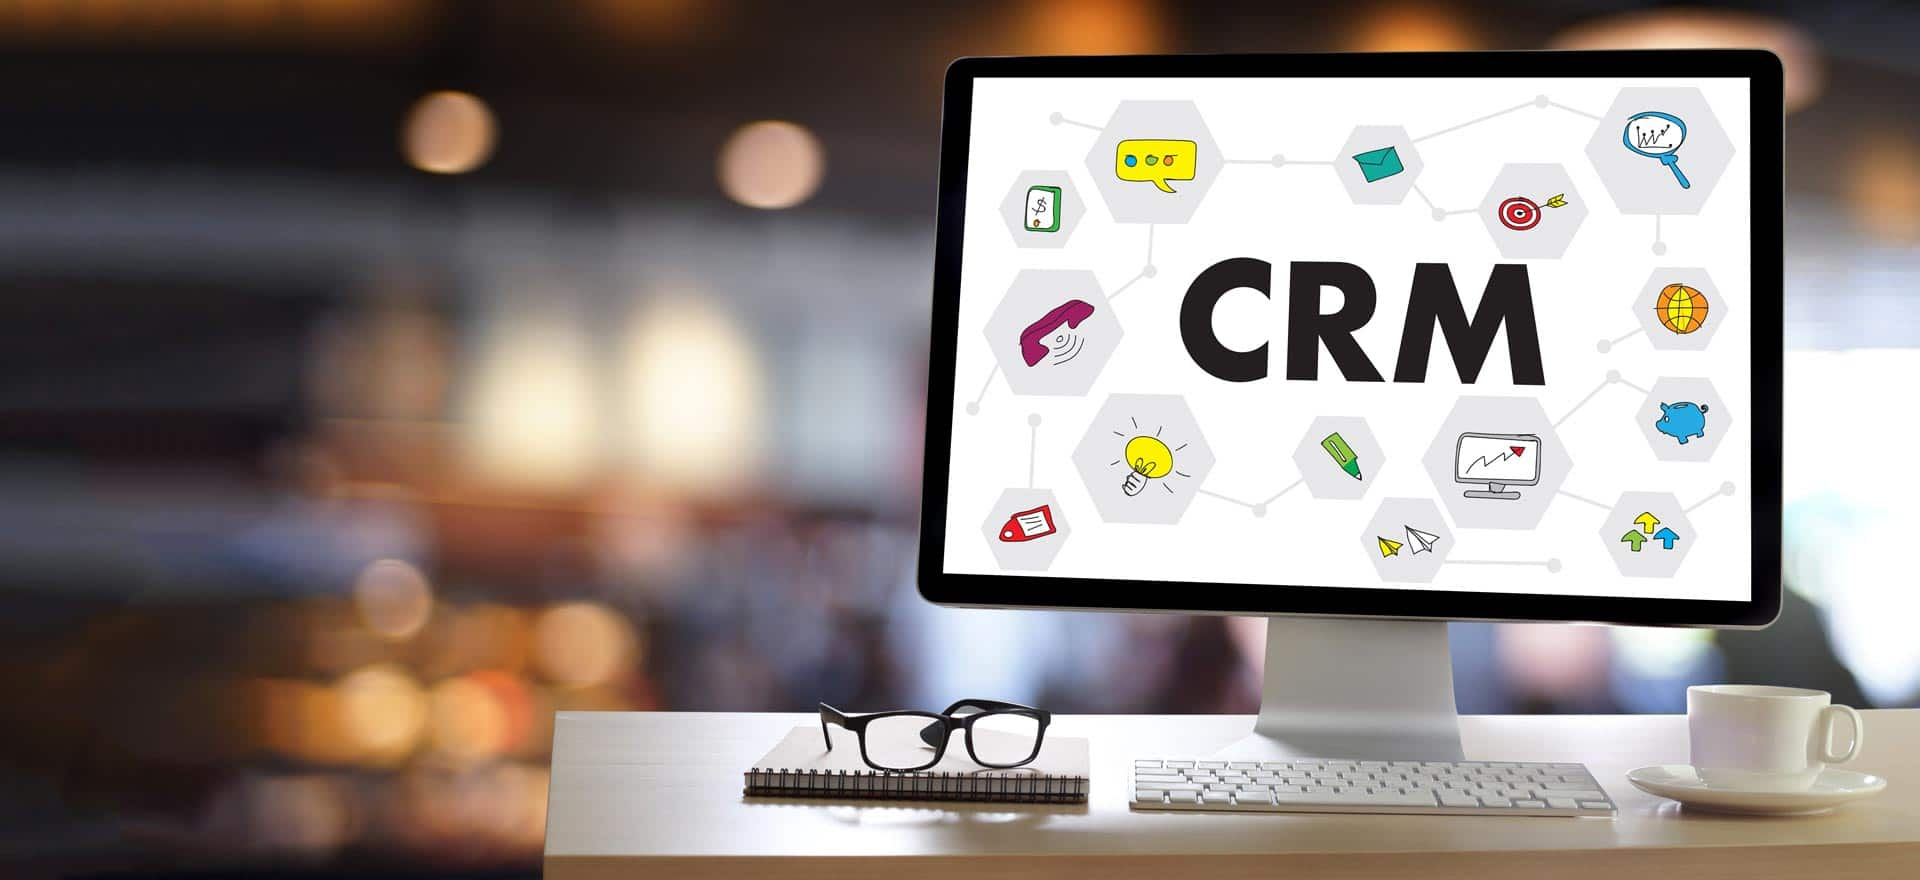 The Reality of CRM